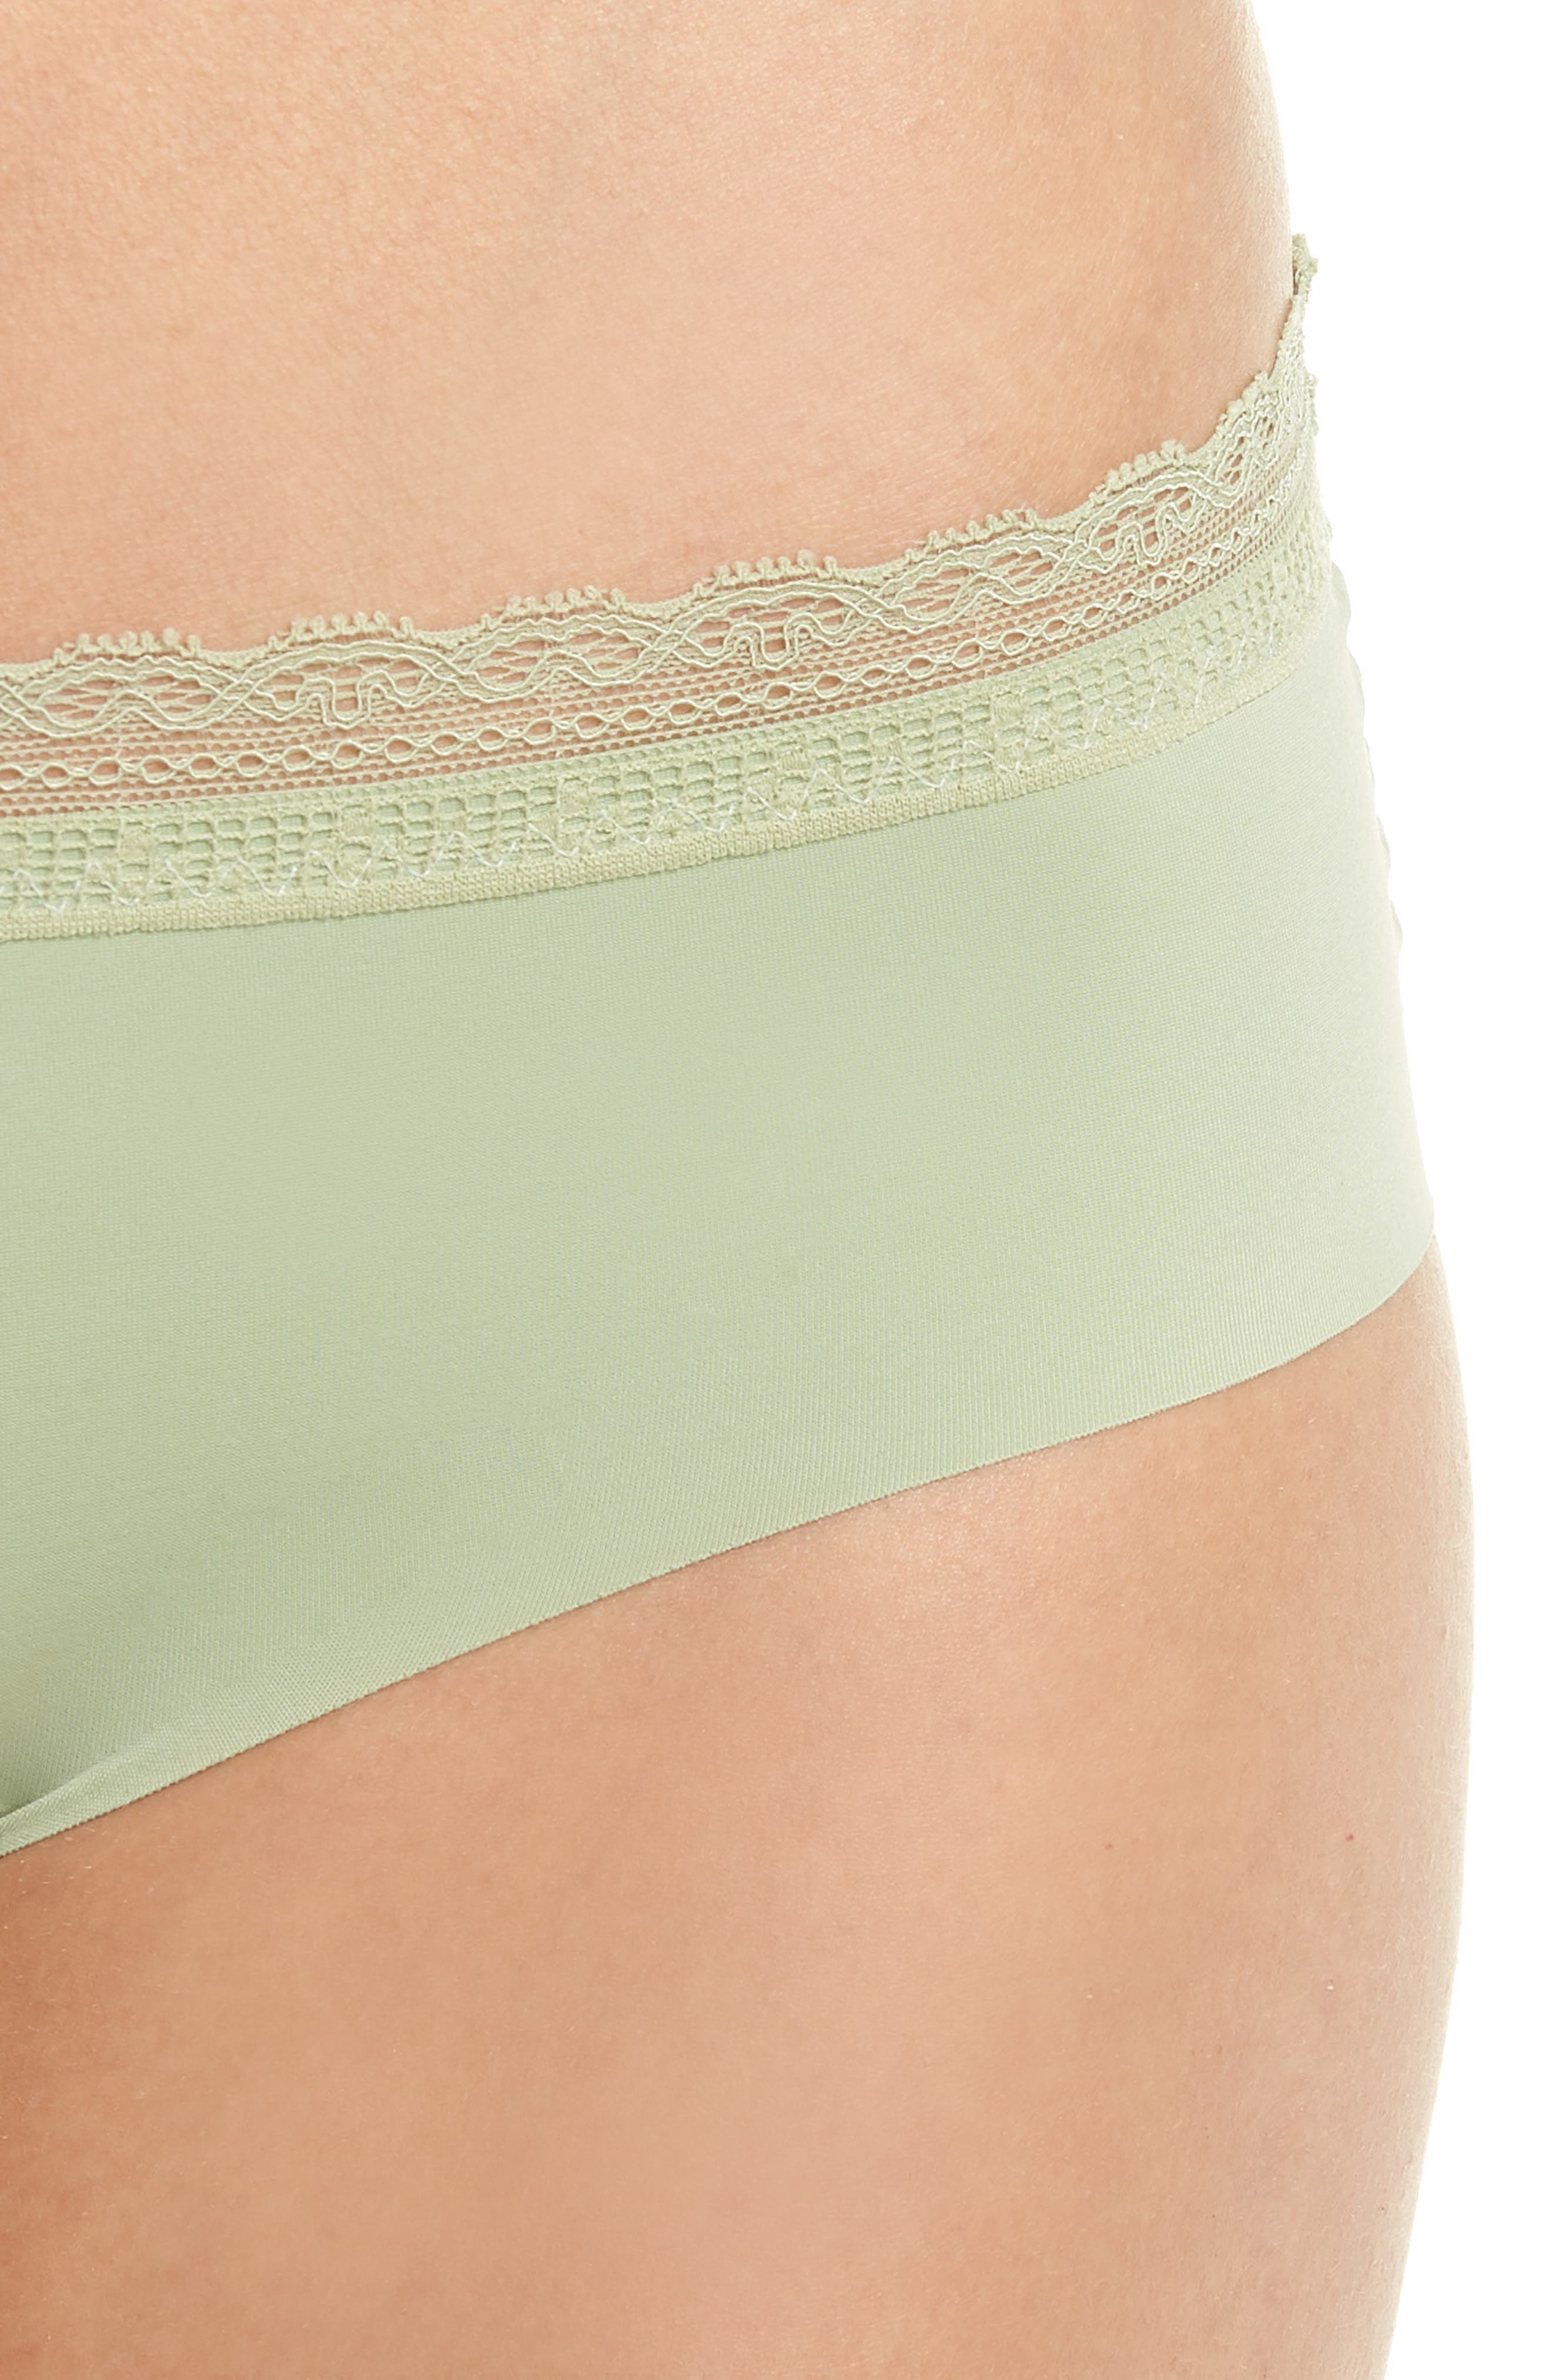 Almost Naked Lace Trim Hipster Briefs,                             Alternate thumbnail 7, color,                             Green Tea